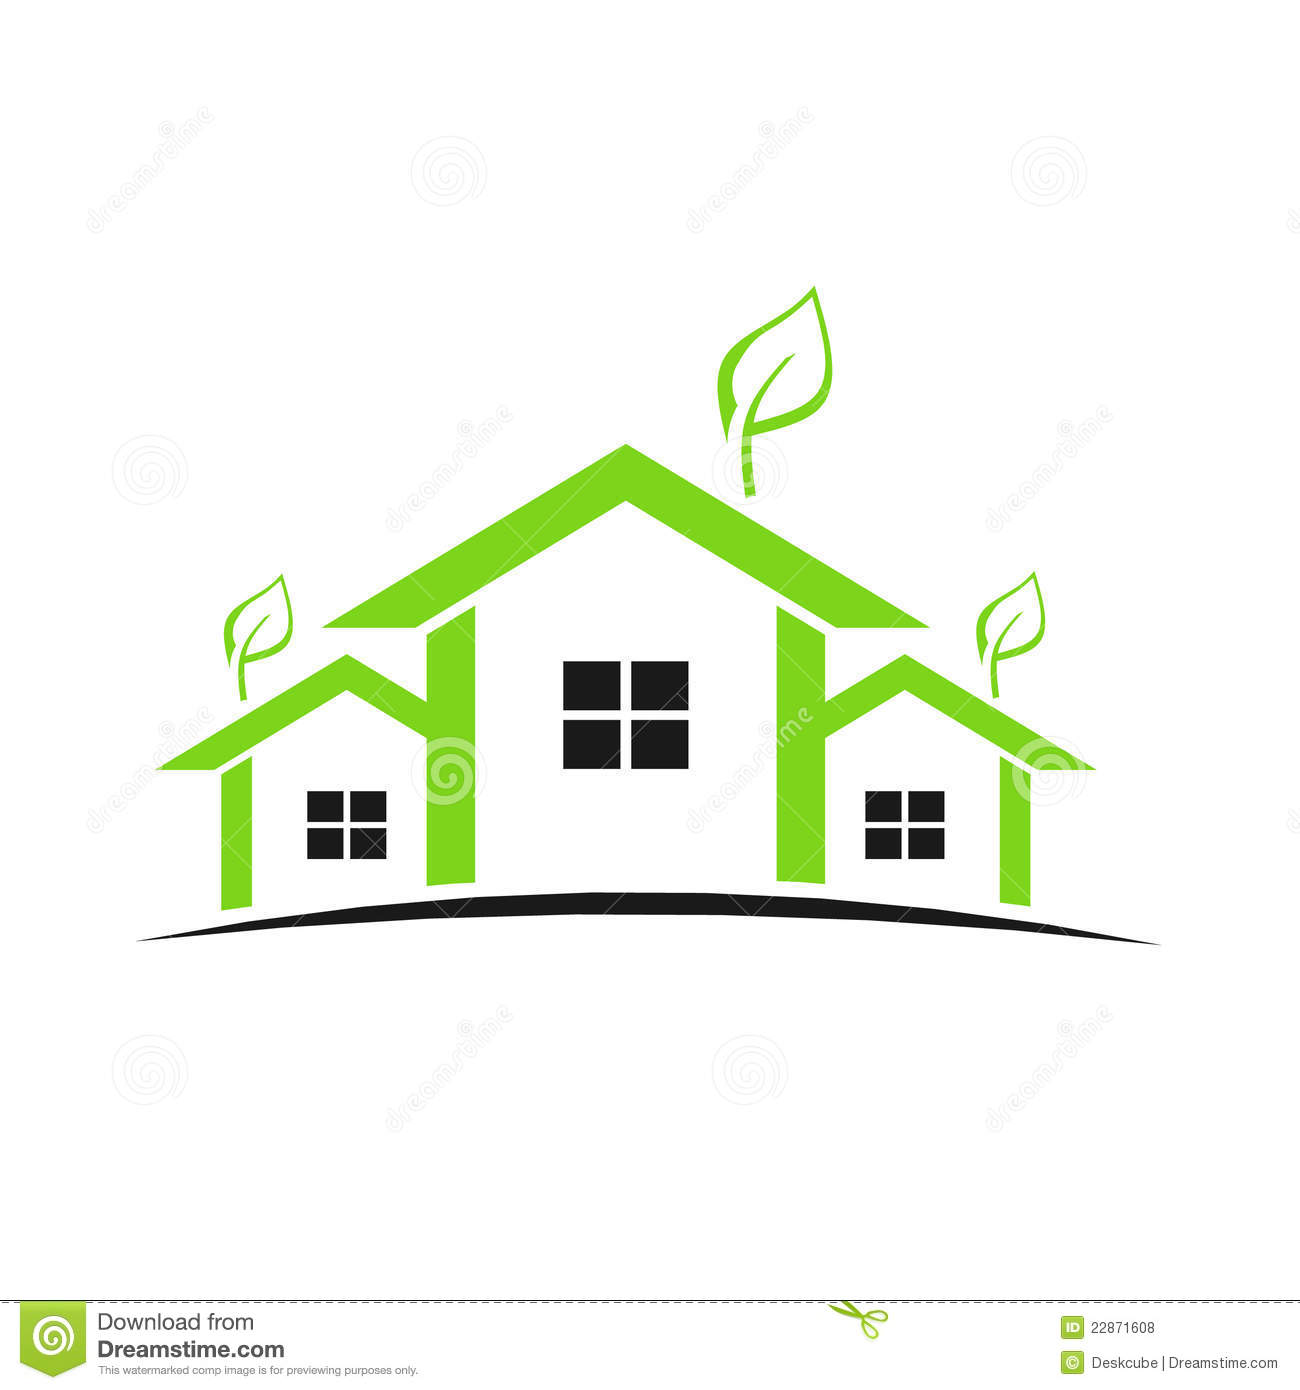 House roof out. | Clipart Panda - Free Clipart Images